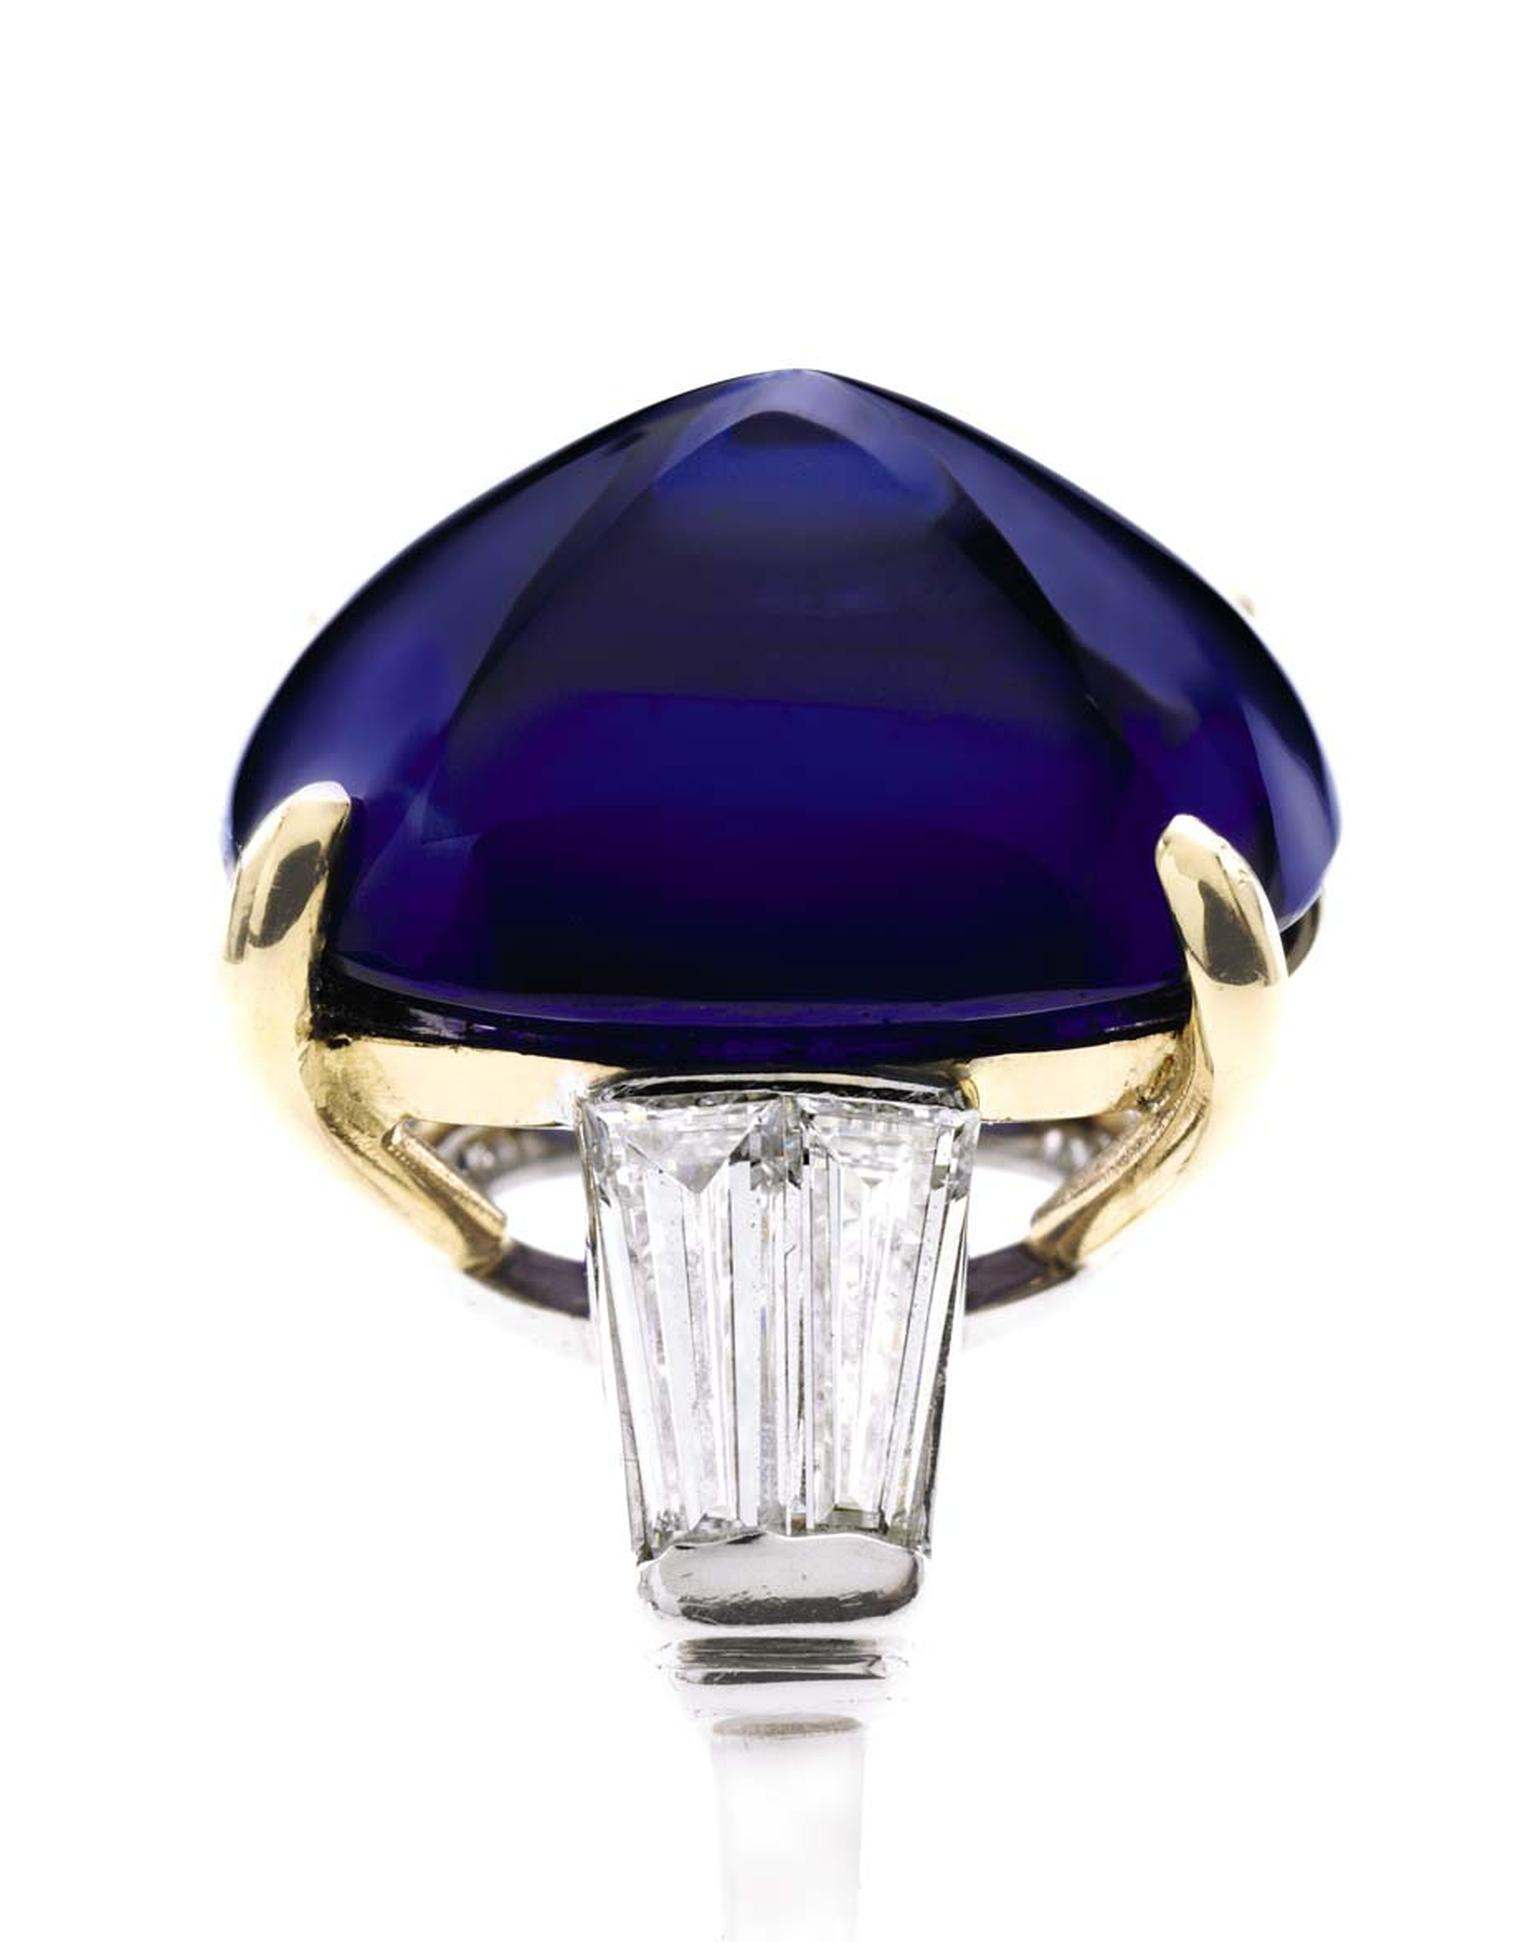 Important platinum and gold ring set with a 9.94ct sugarloaf cabochon sapphire, accompanied by diamonds on each shoulder (estimate: $700,000-$1 million).